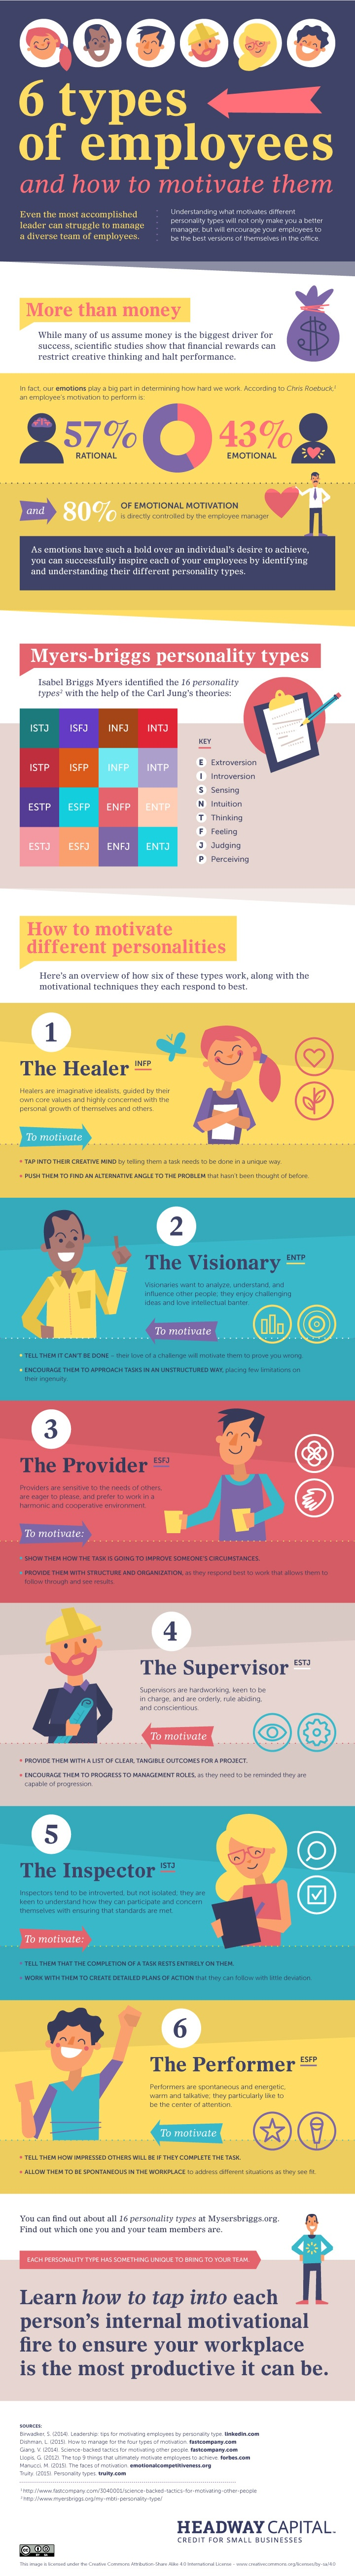 How Managers Can Motivate 6 Employee Personality Types [Infographic]